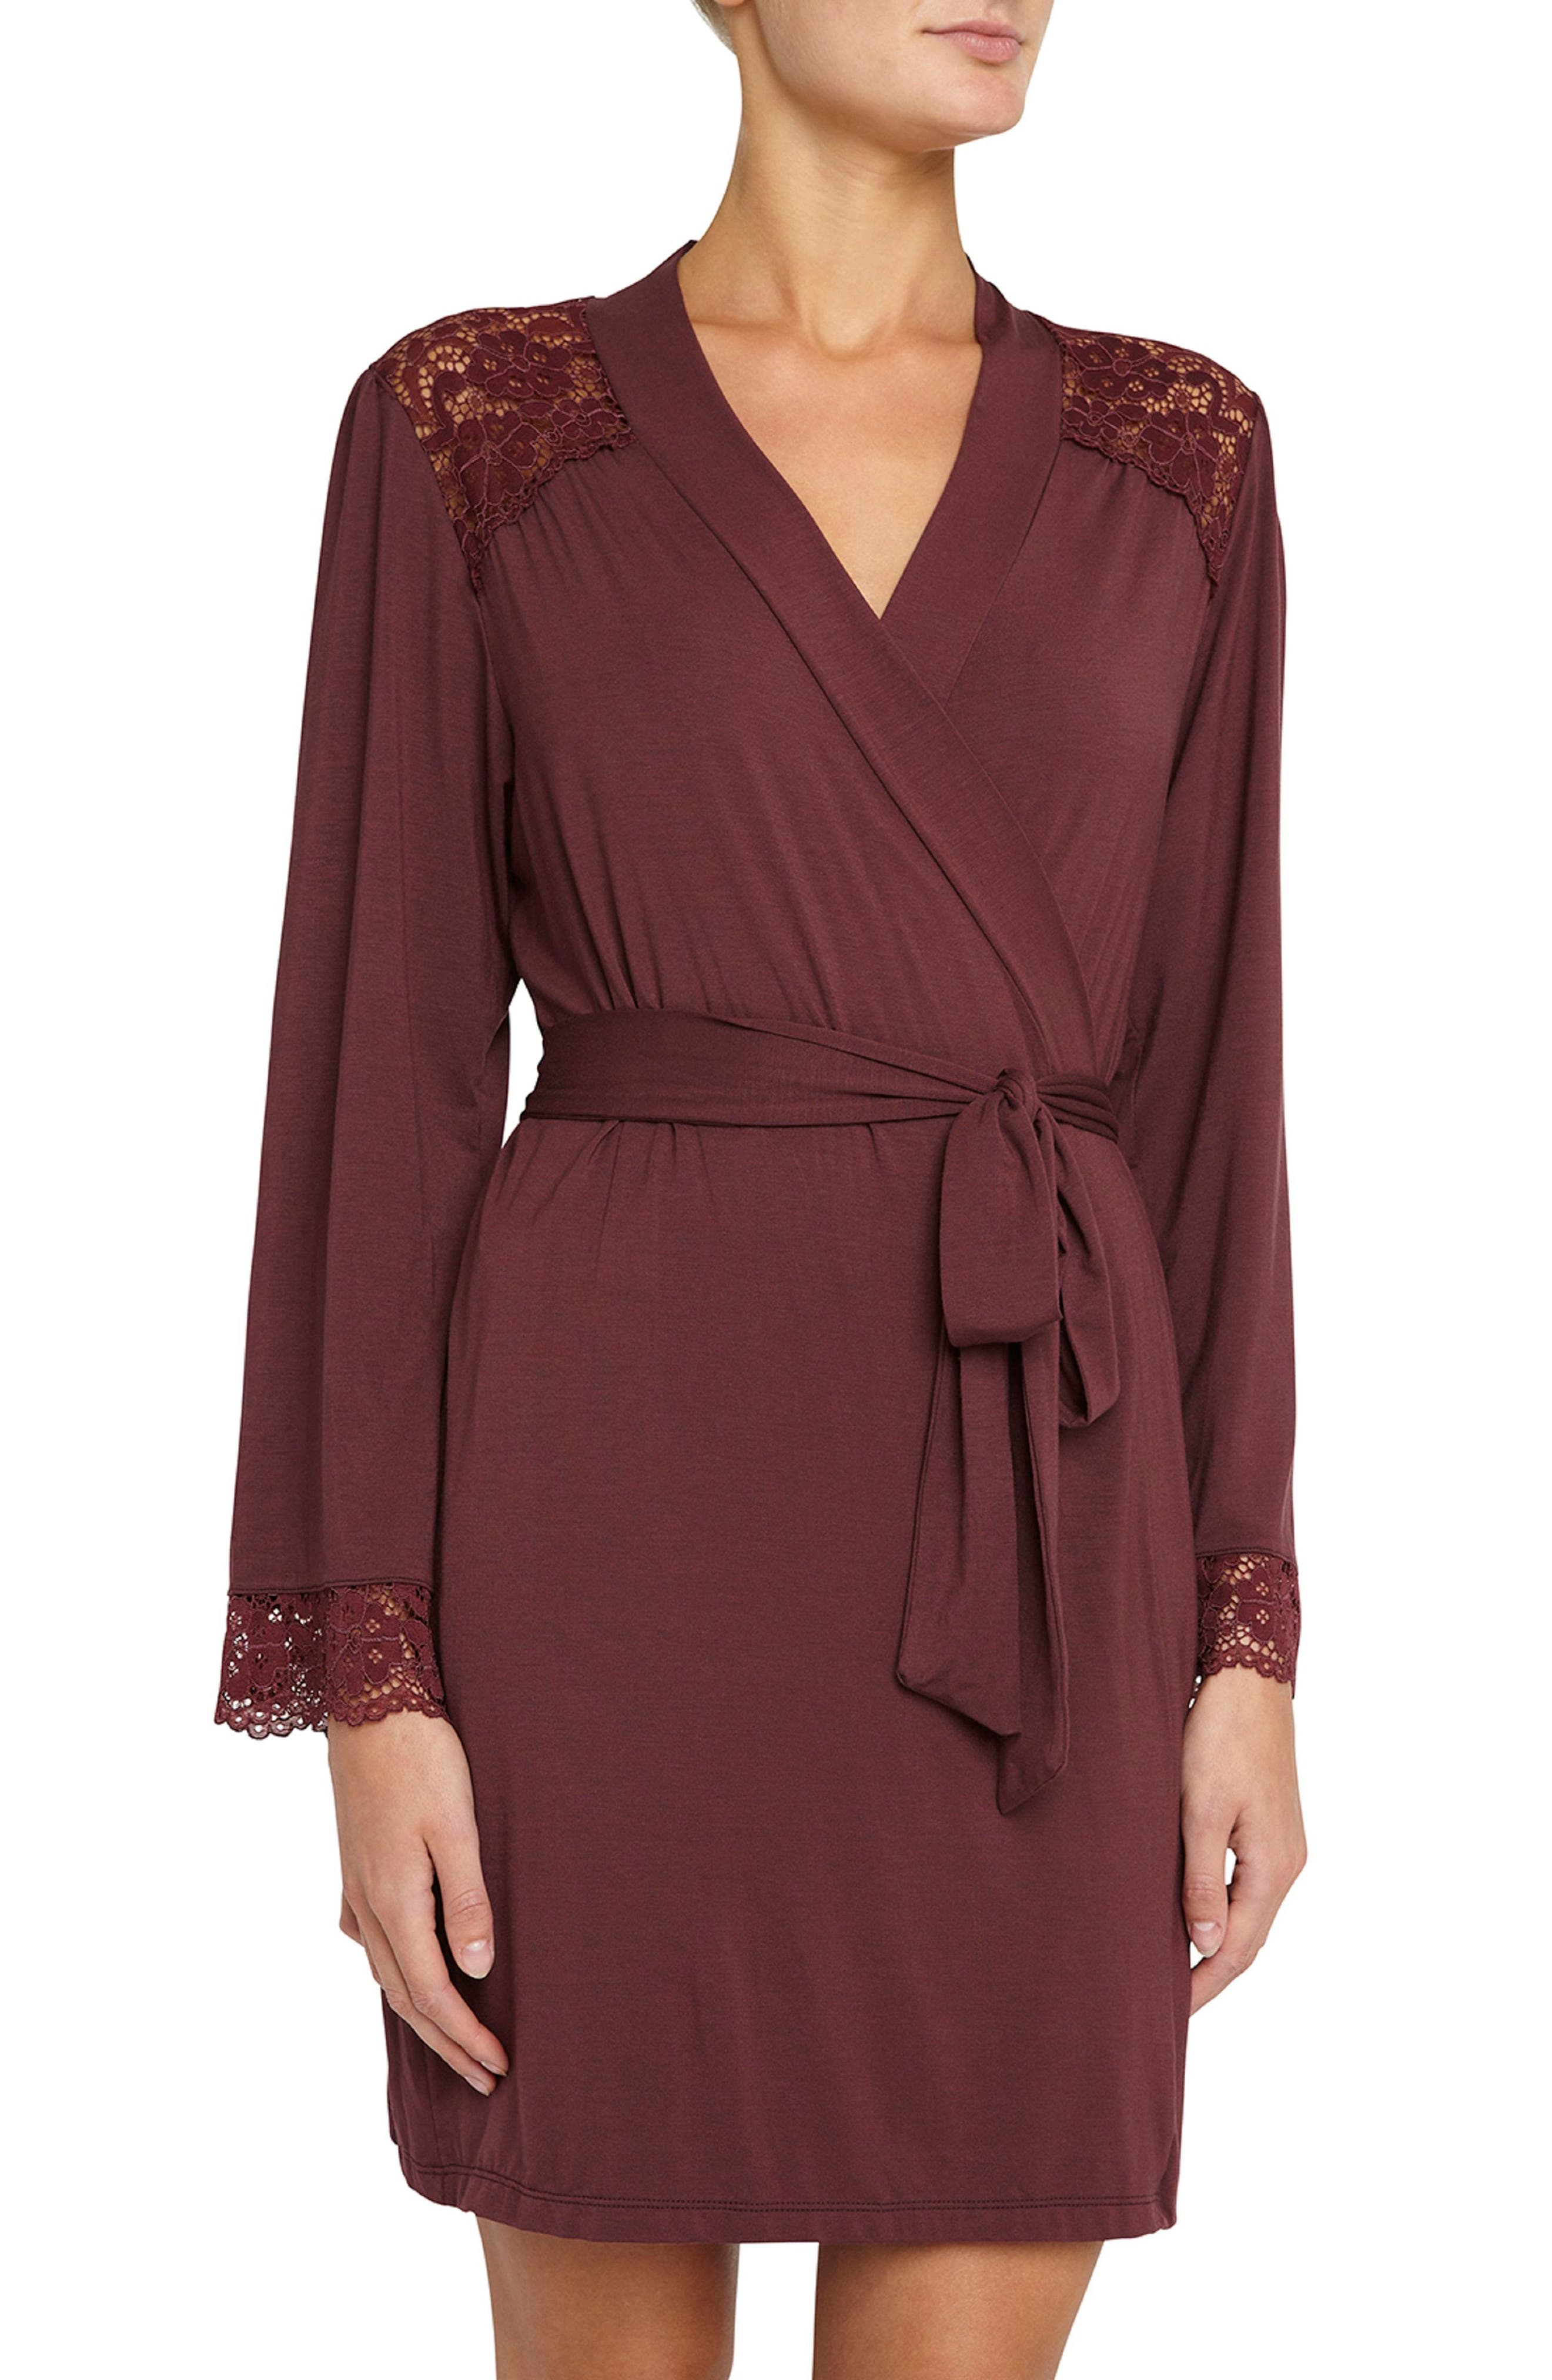 Vineland Wine Lila Short Robe,                         Main,                         color, Vineyard Wine